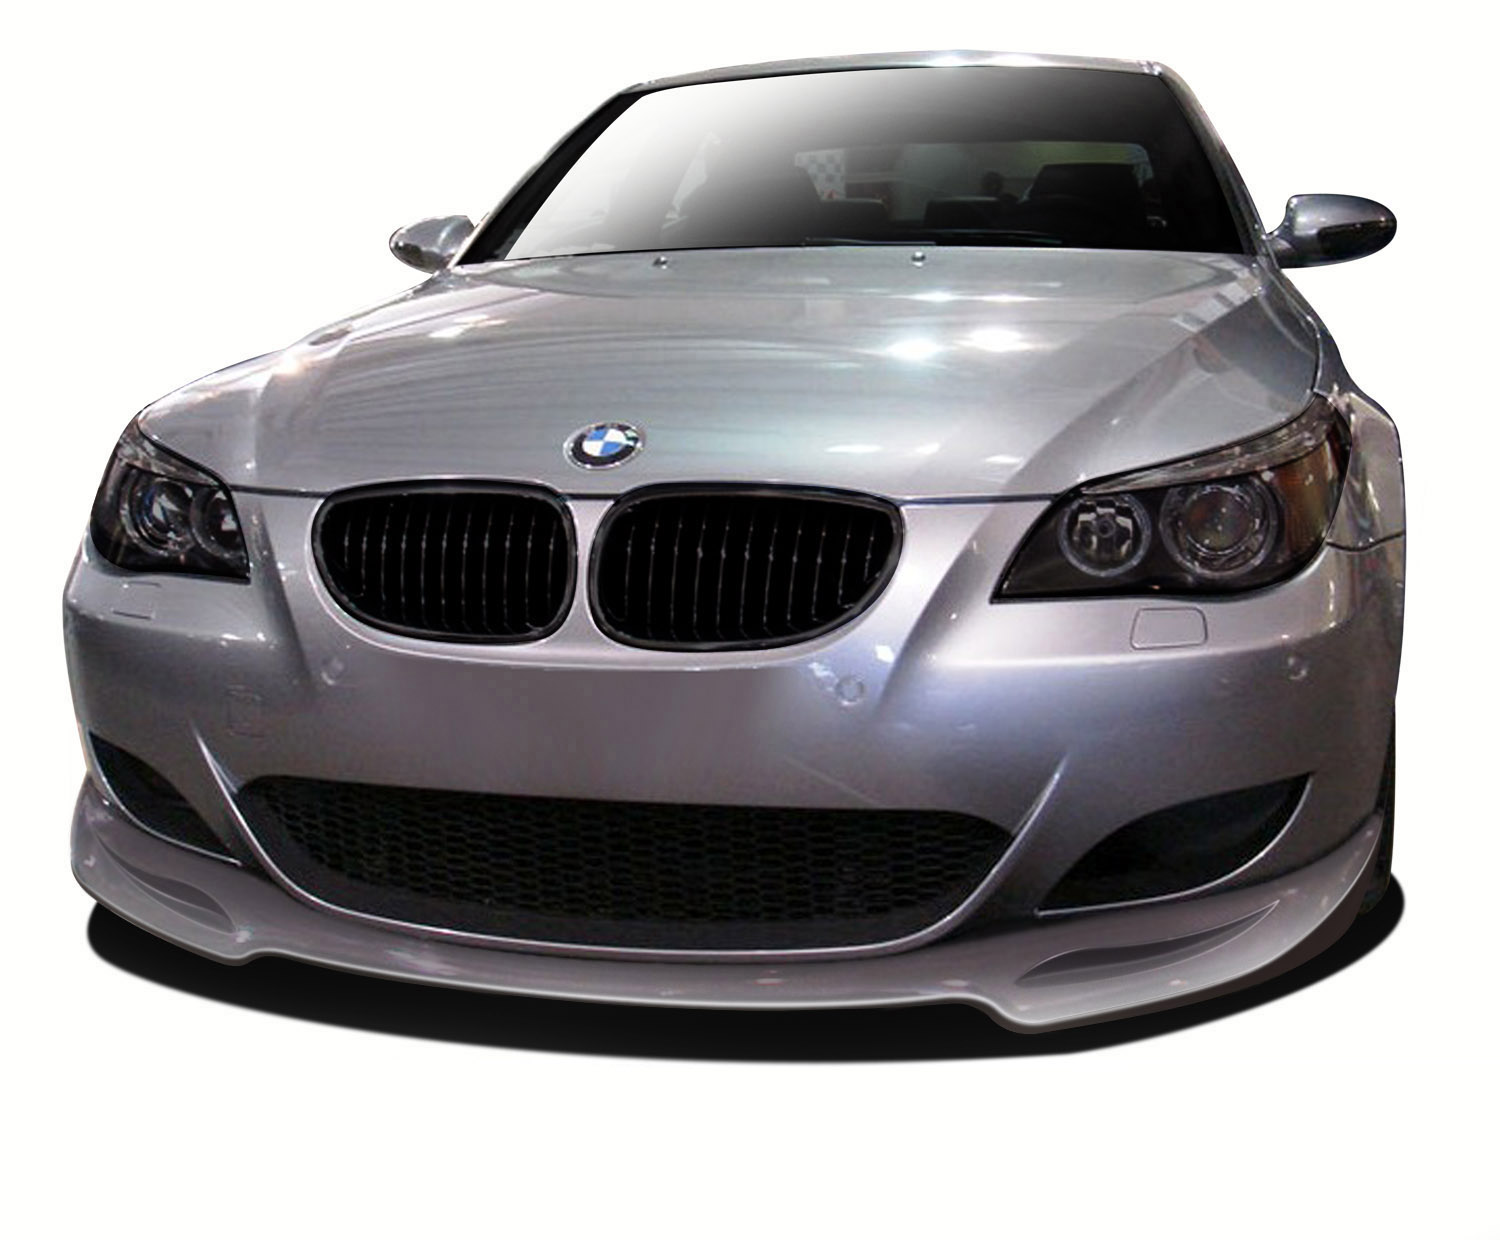 Fiberglass+ Front Lip/Add On Bodykit for 2006 BMW M5 ALL - 2006-2010 BMW M5 E60 AF-1 Front Add-On Spoiler ( GFK ) - 1 Piece